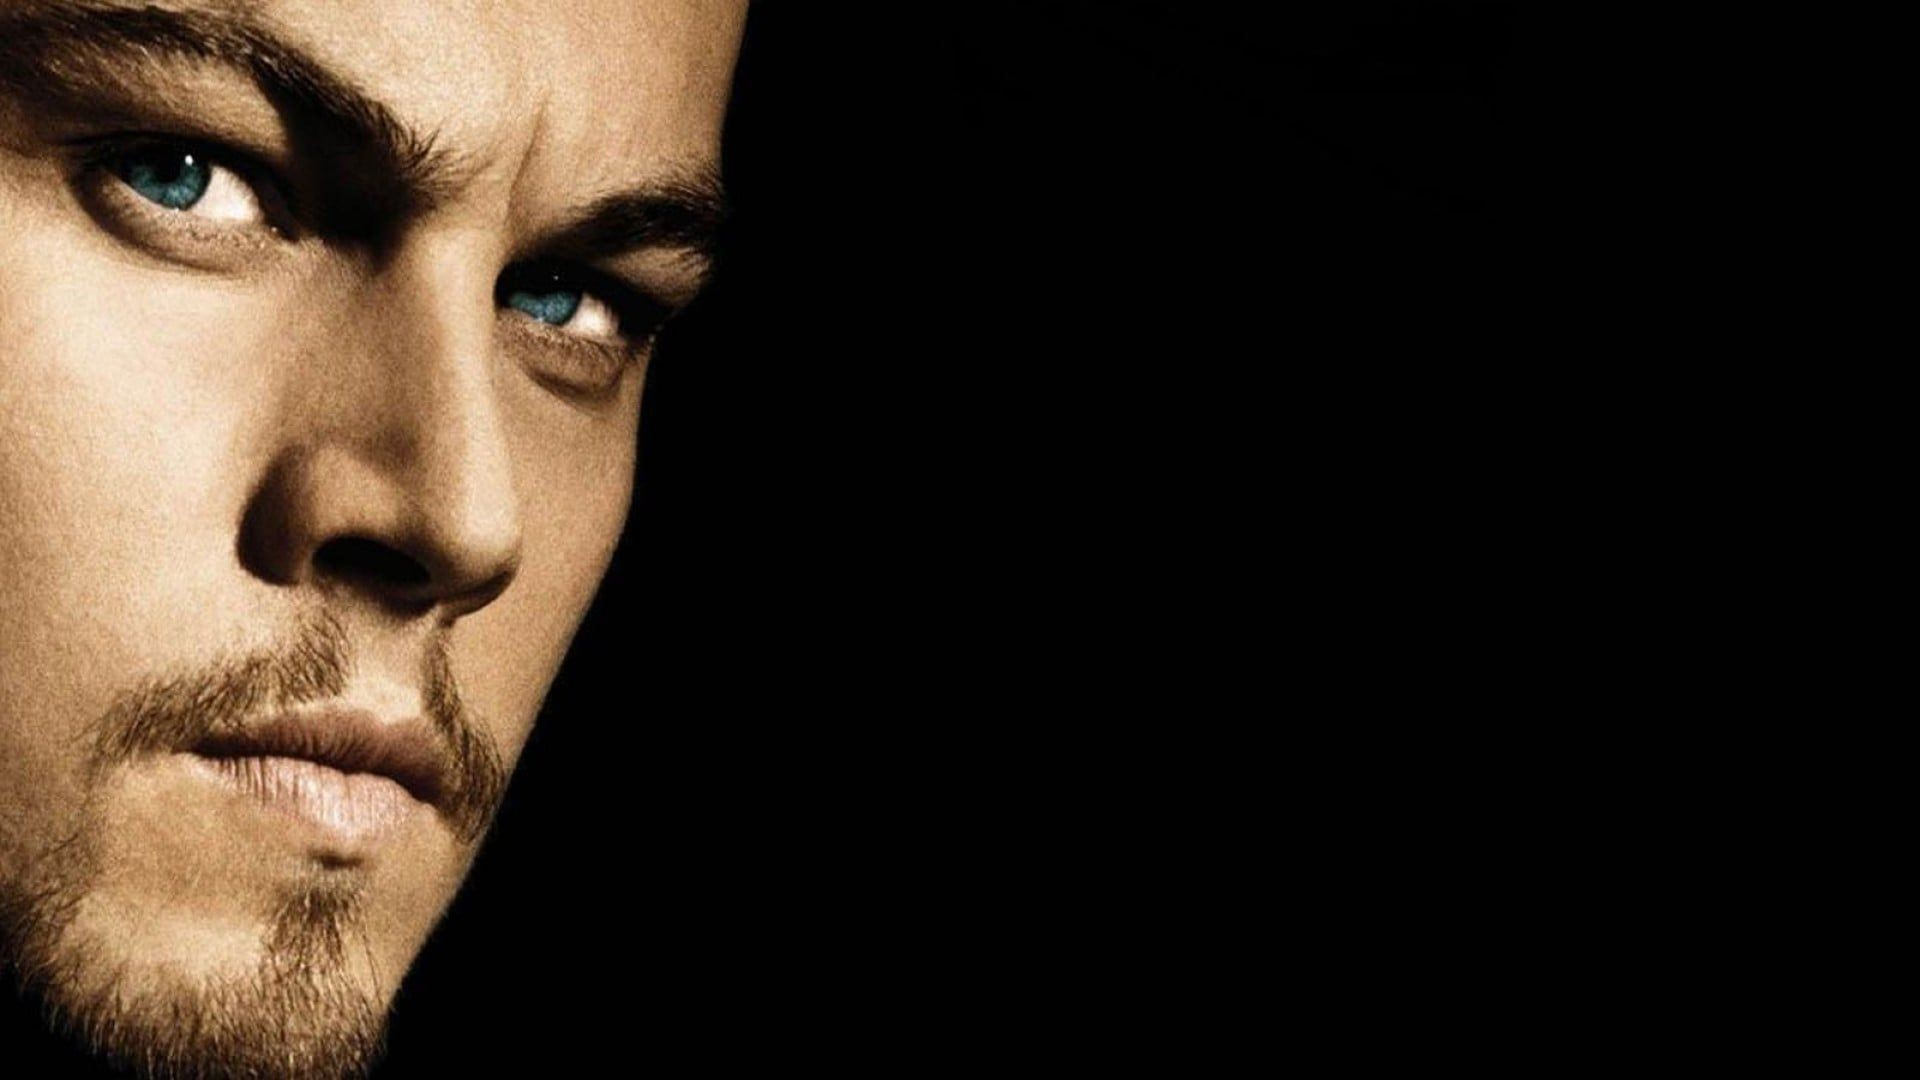 1920x1080 Blue Eyed Leonardo DiCaprio Awesome Wallpaper - 1080p Full HD Wallpaper